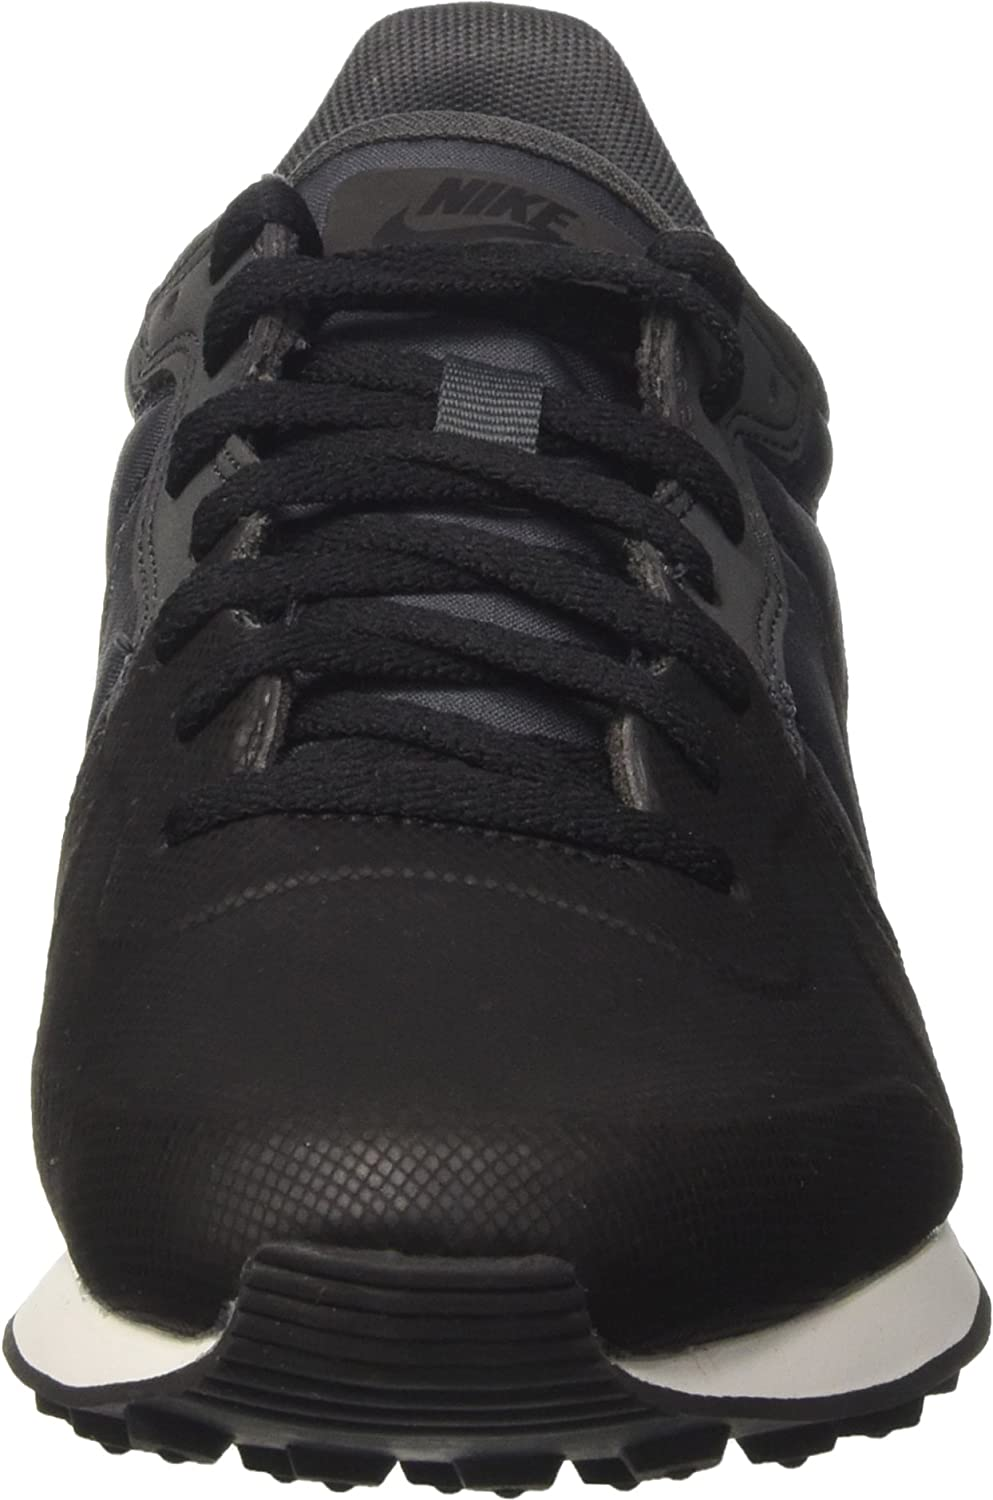 new product cfe49 90340 Amazon.com   NIKE Air Max Uptempo Fuse 360 Mens Basketball Shoes 555103-002  Cool Grey 8 M US   Basketball